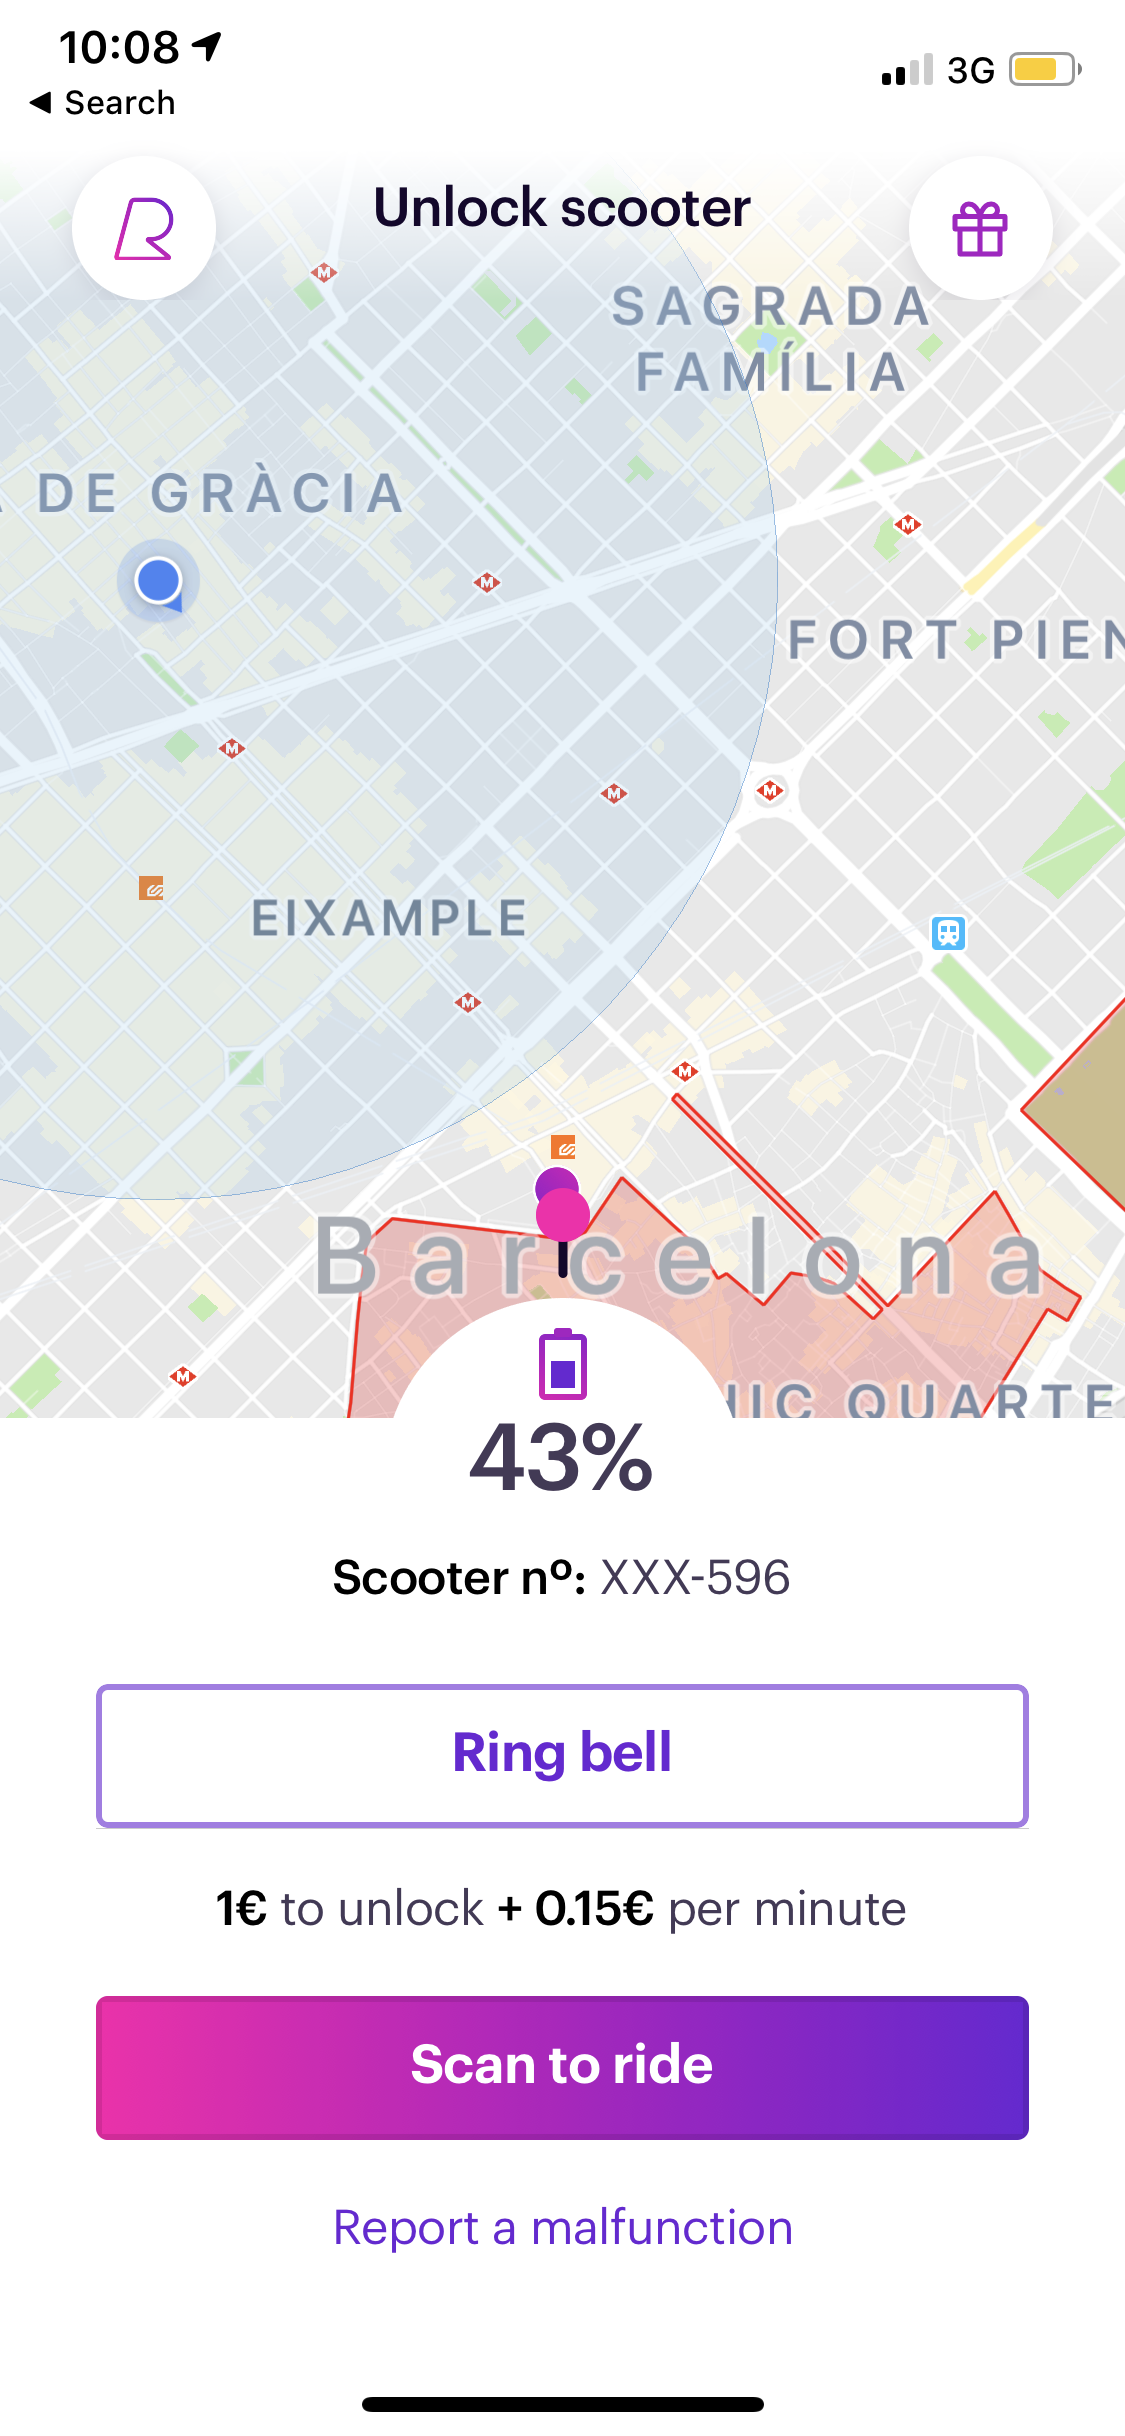 4 Ways to Improve the User Experience for Scooter Sharing Services